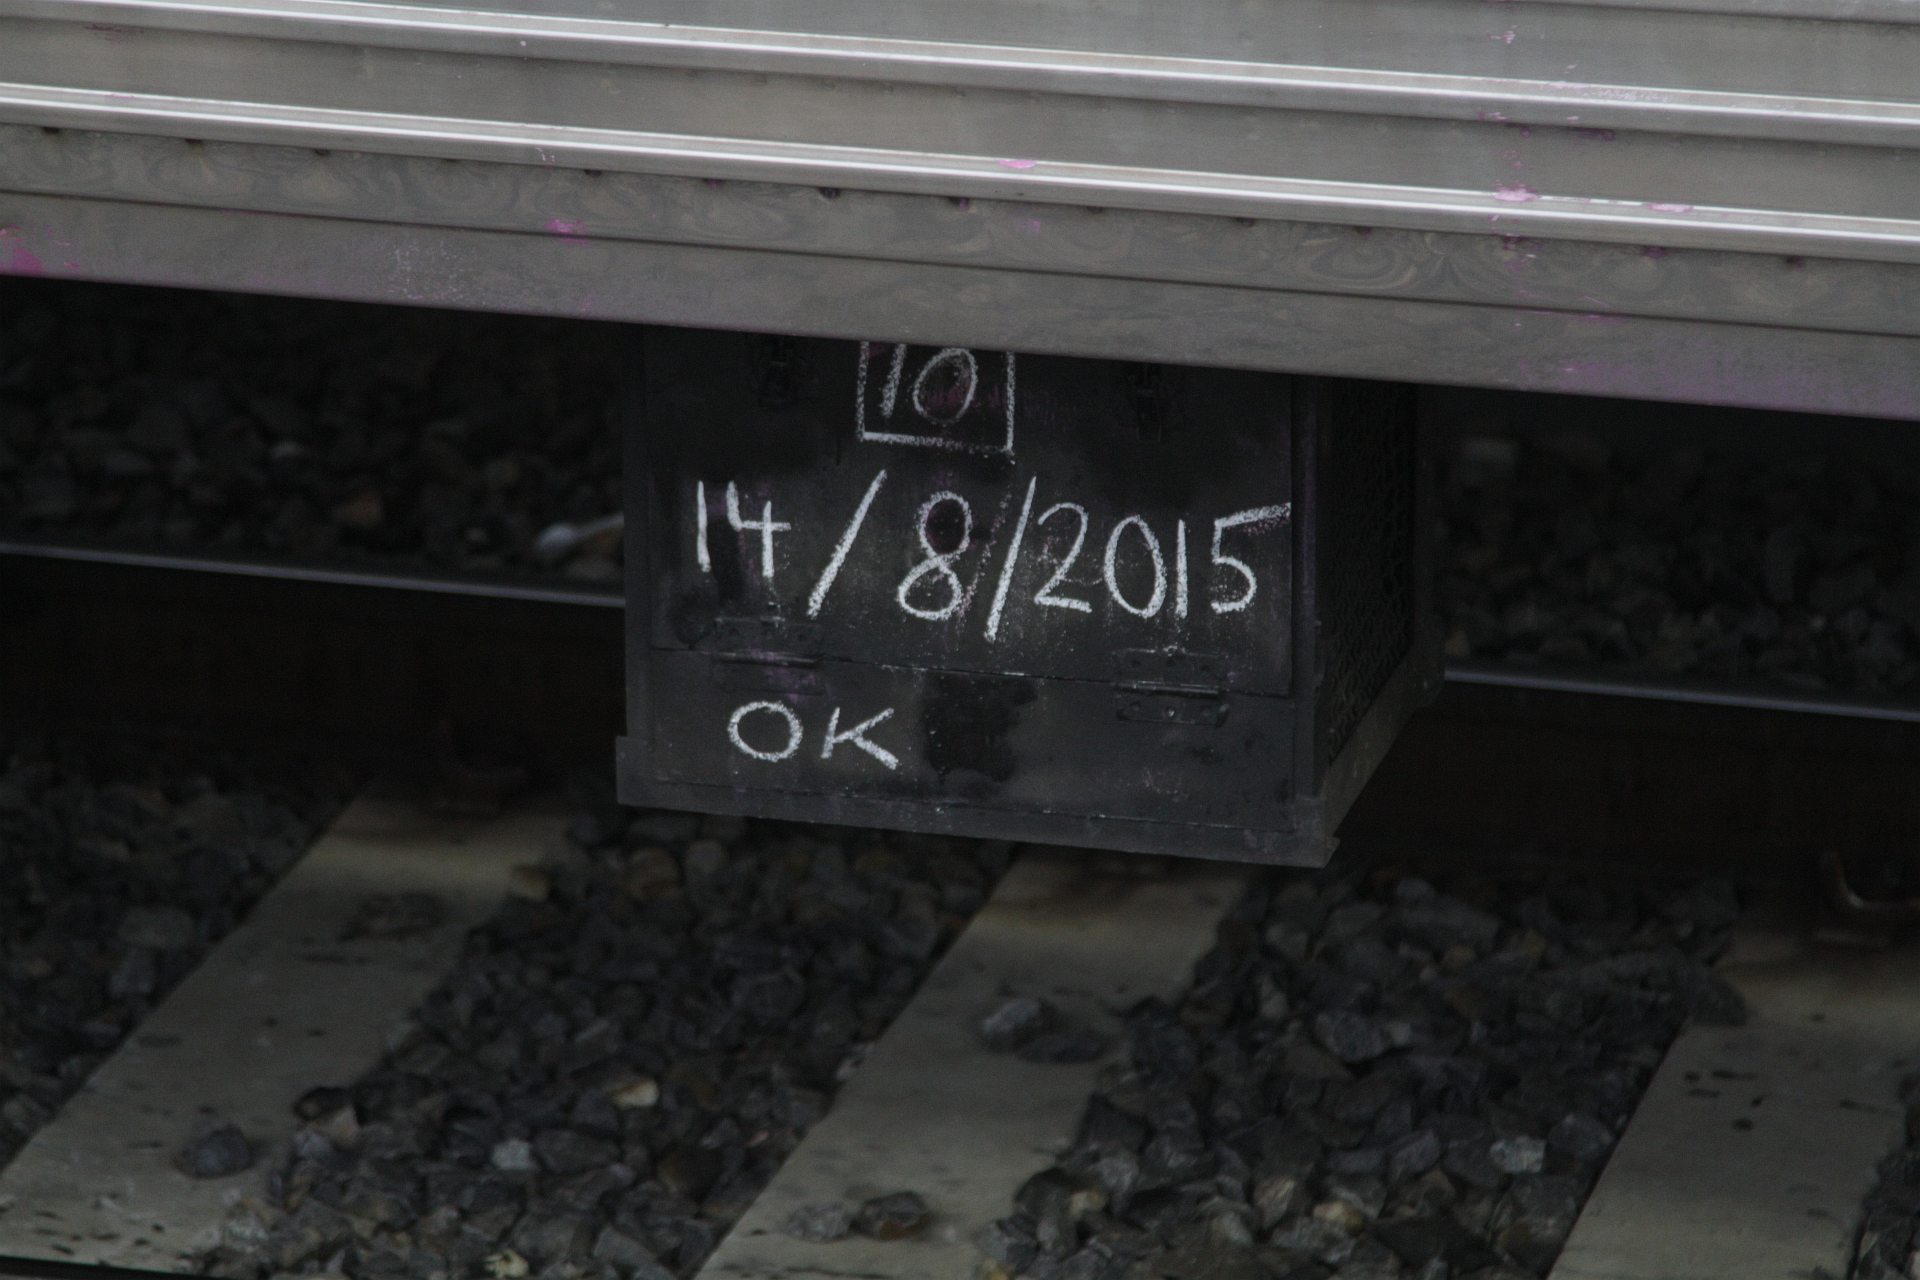 dated chalk markings on the underside of a comeng train wongm s